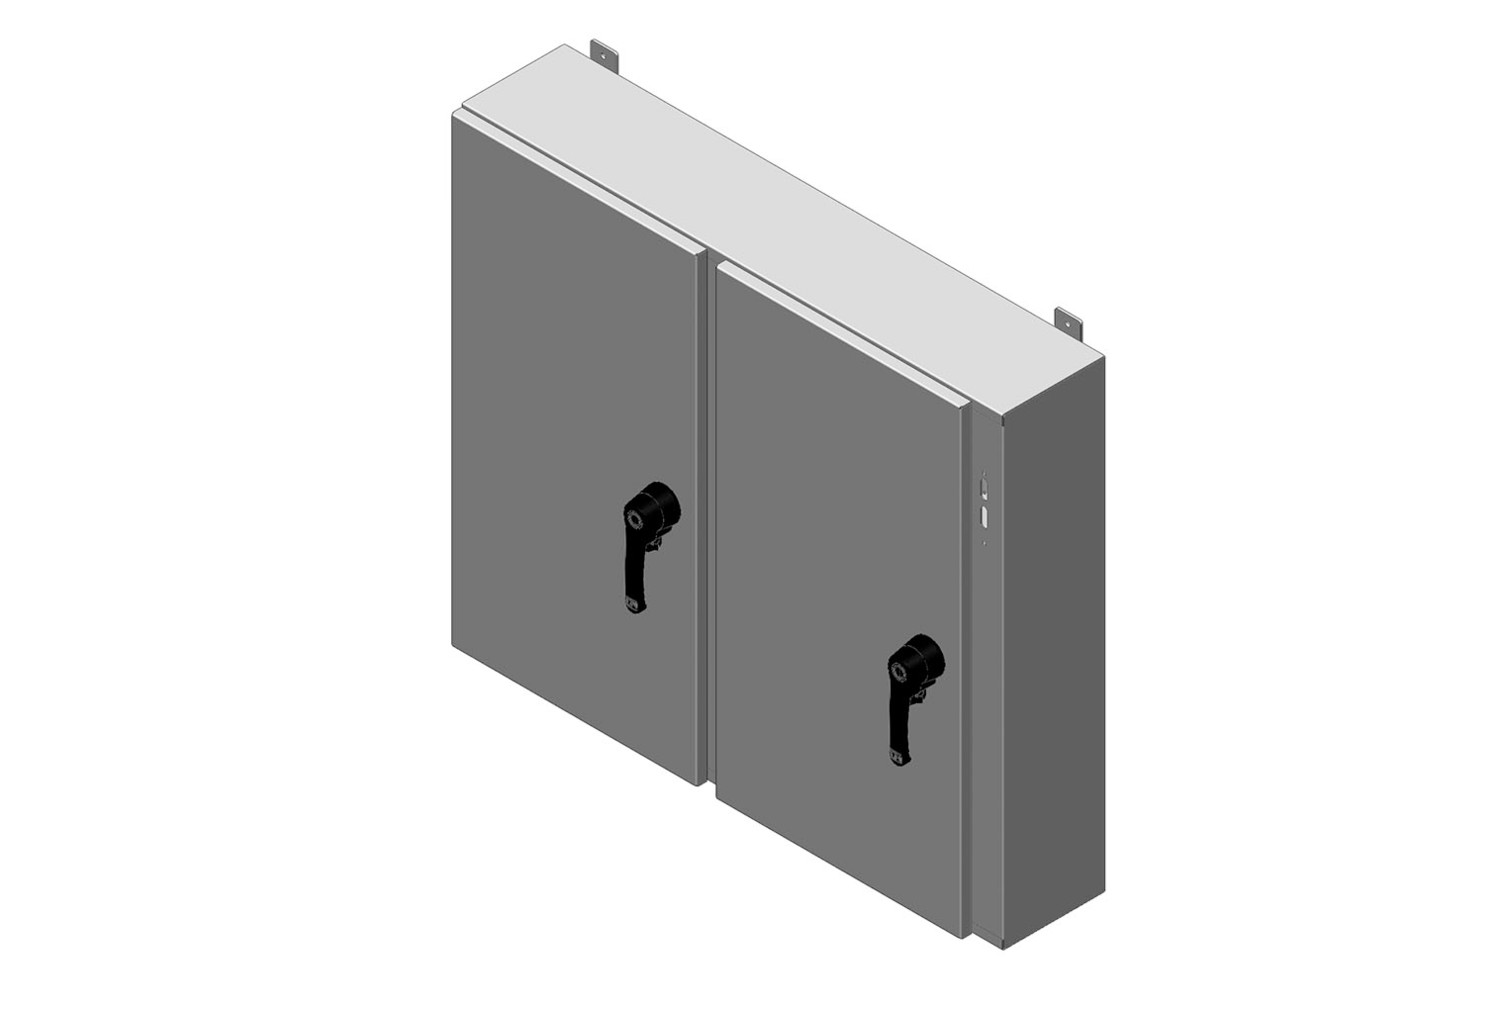 RMR Standard Wall-Mount Disconnect Enclosure, Type 4, with Solid Double Door Image